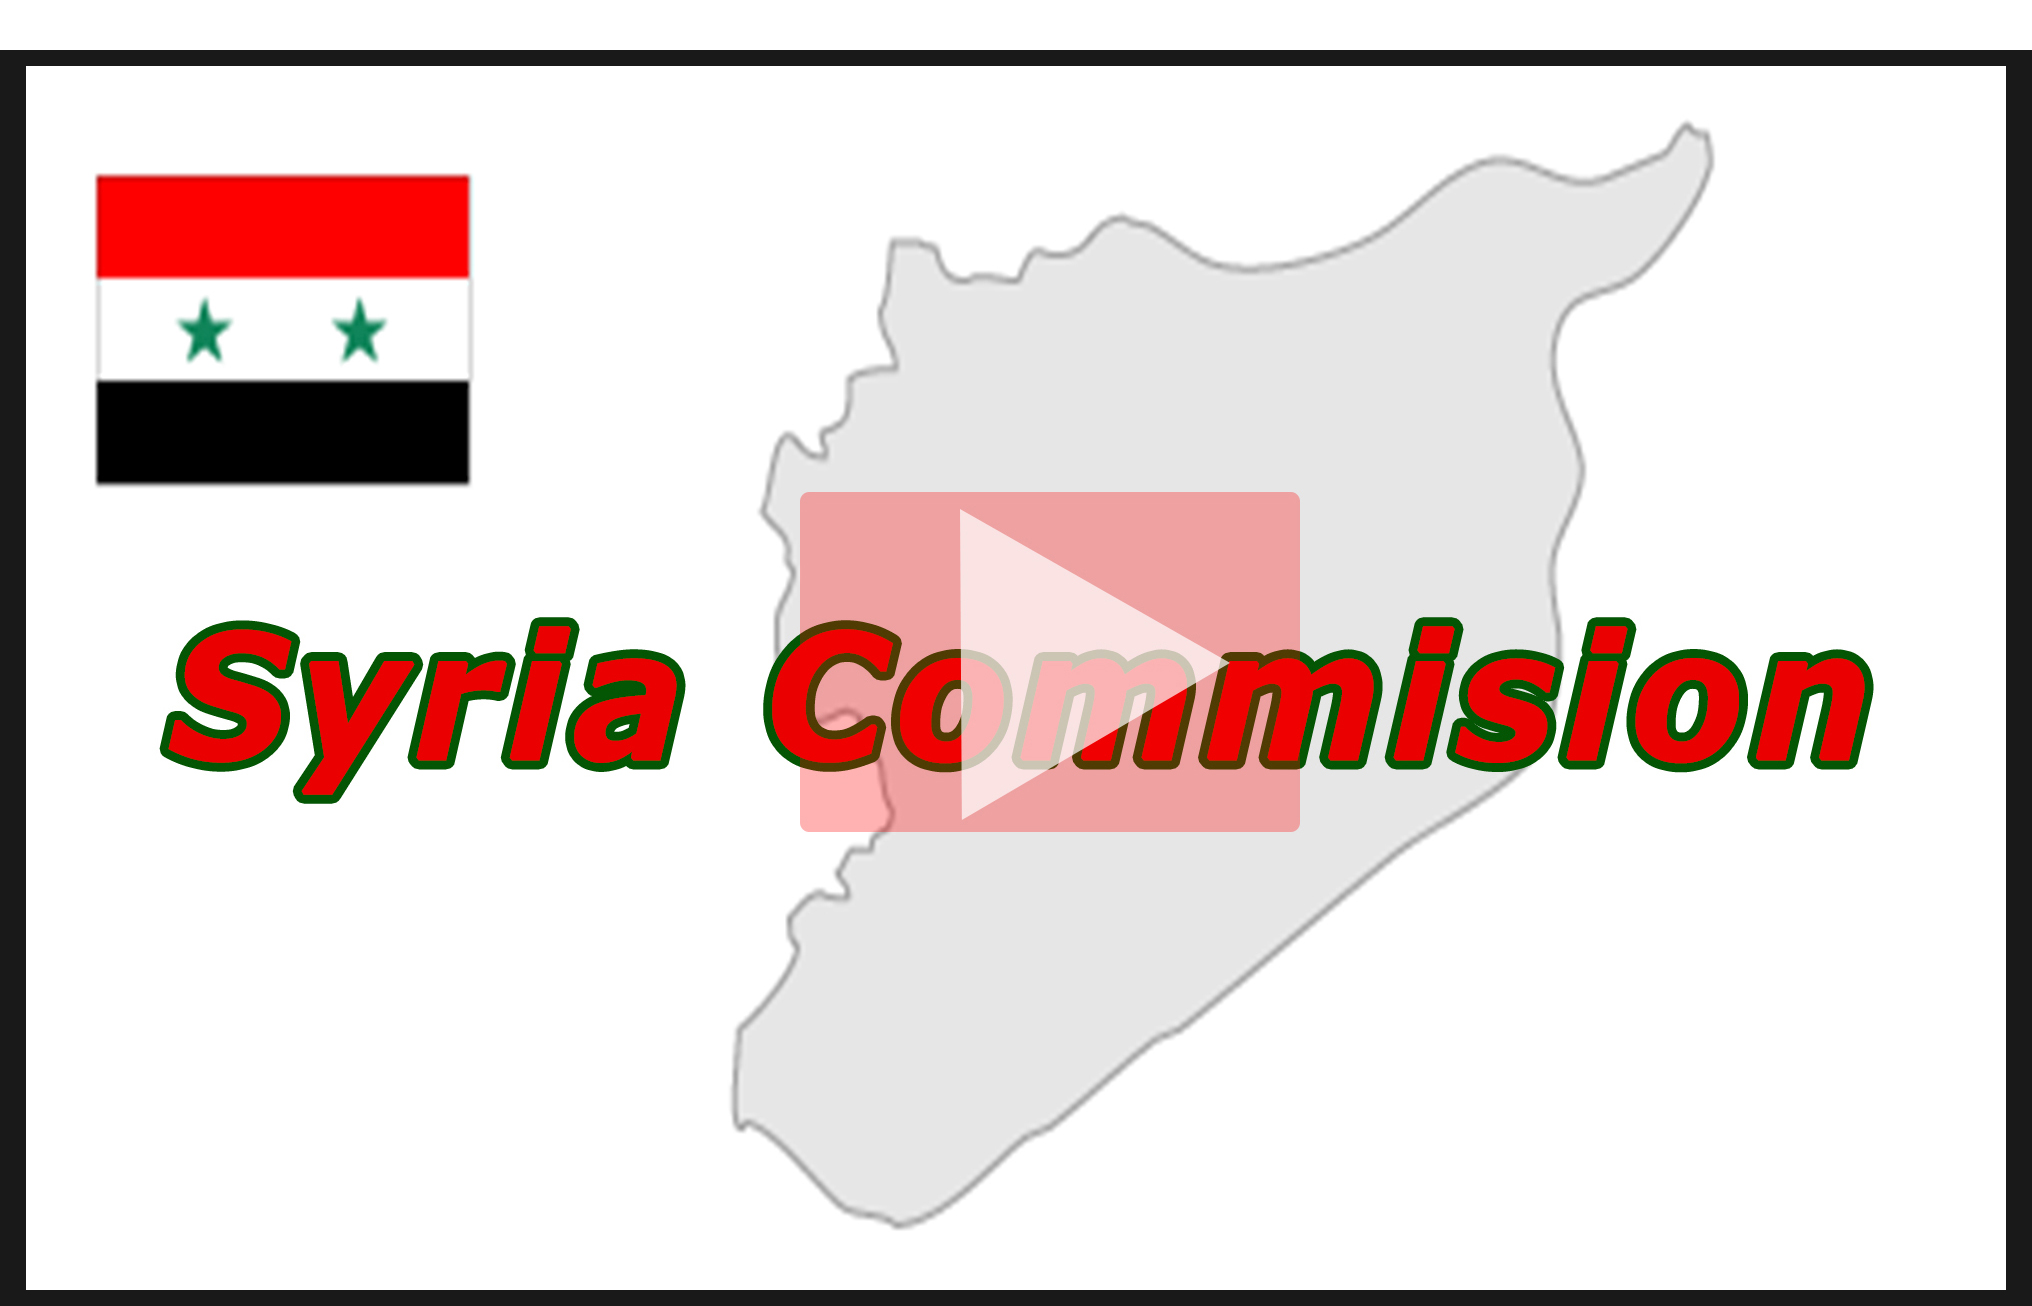 Syria-commission